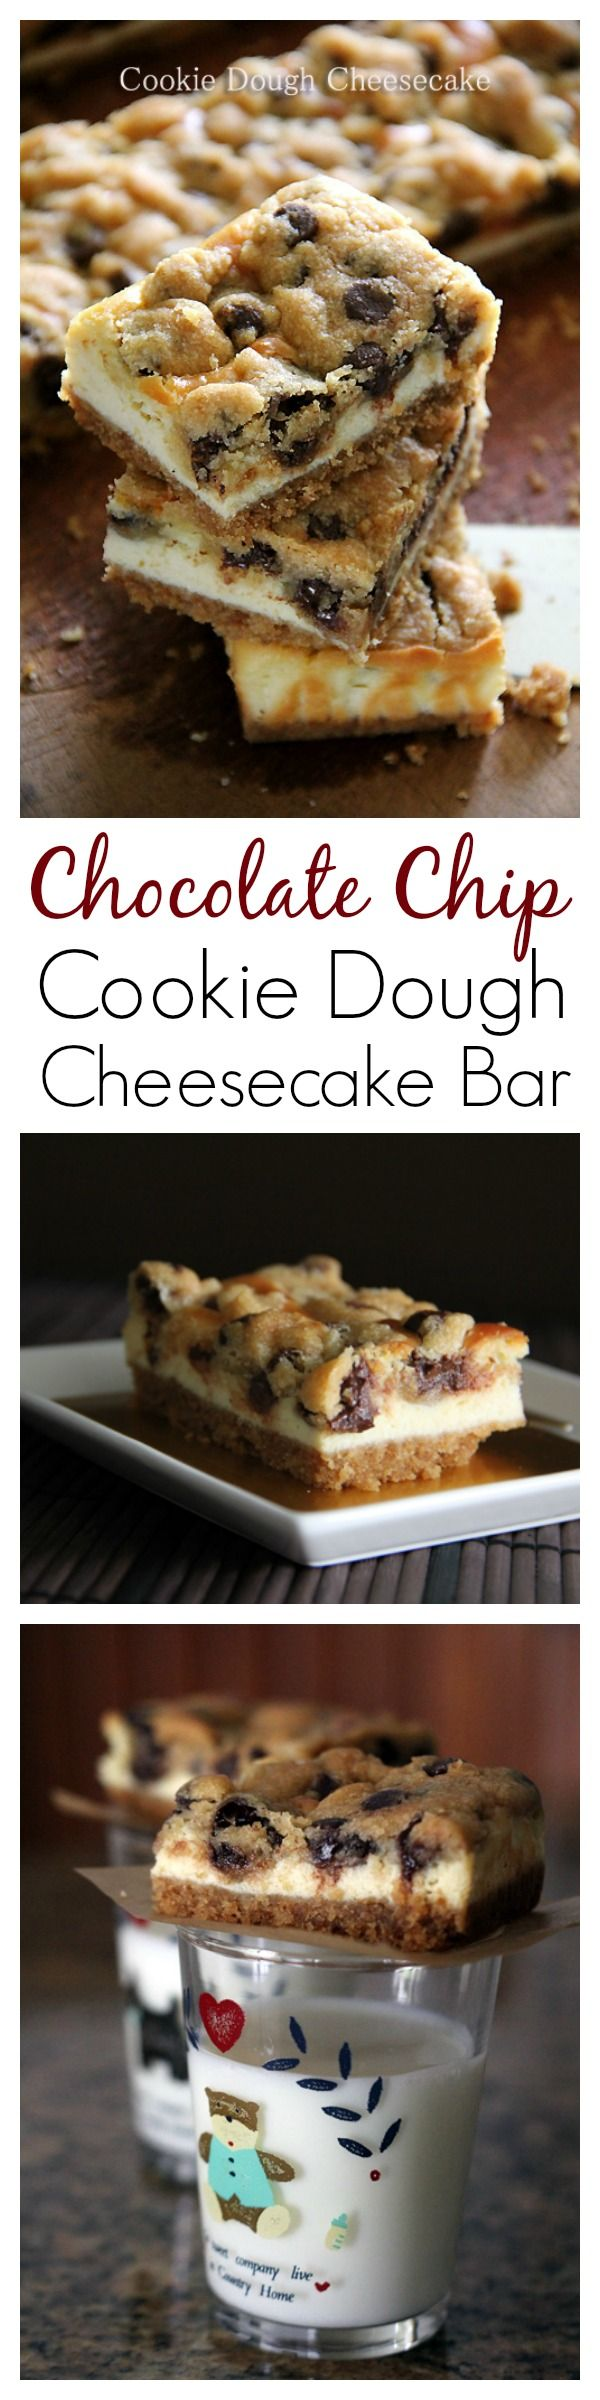 Chocolate Chip Cookie Dough Cheesecake Bar recipe, the BEST cheesecake bar EVER!!